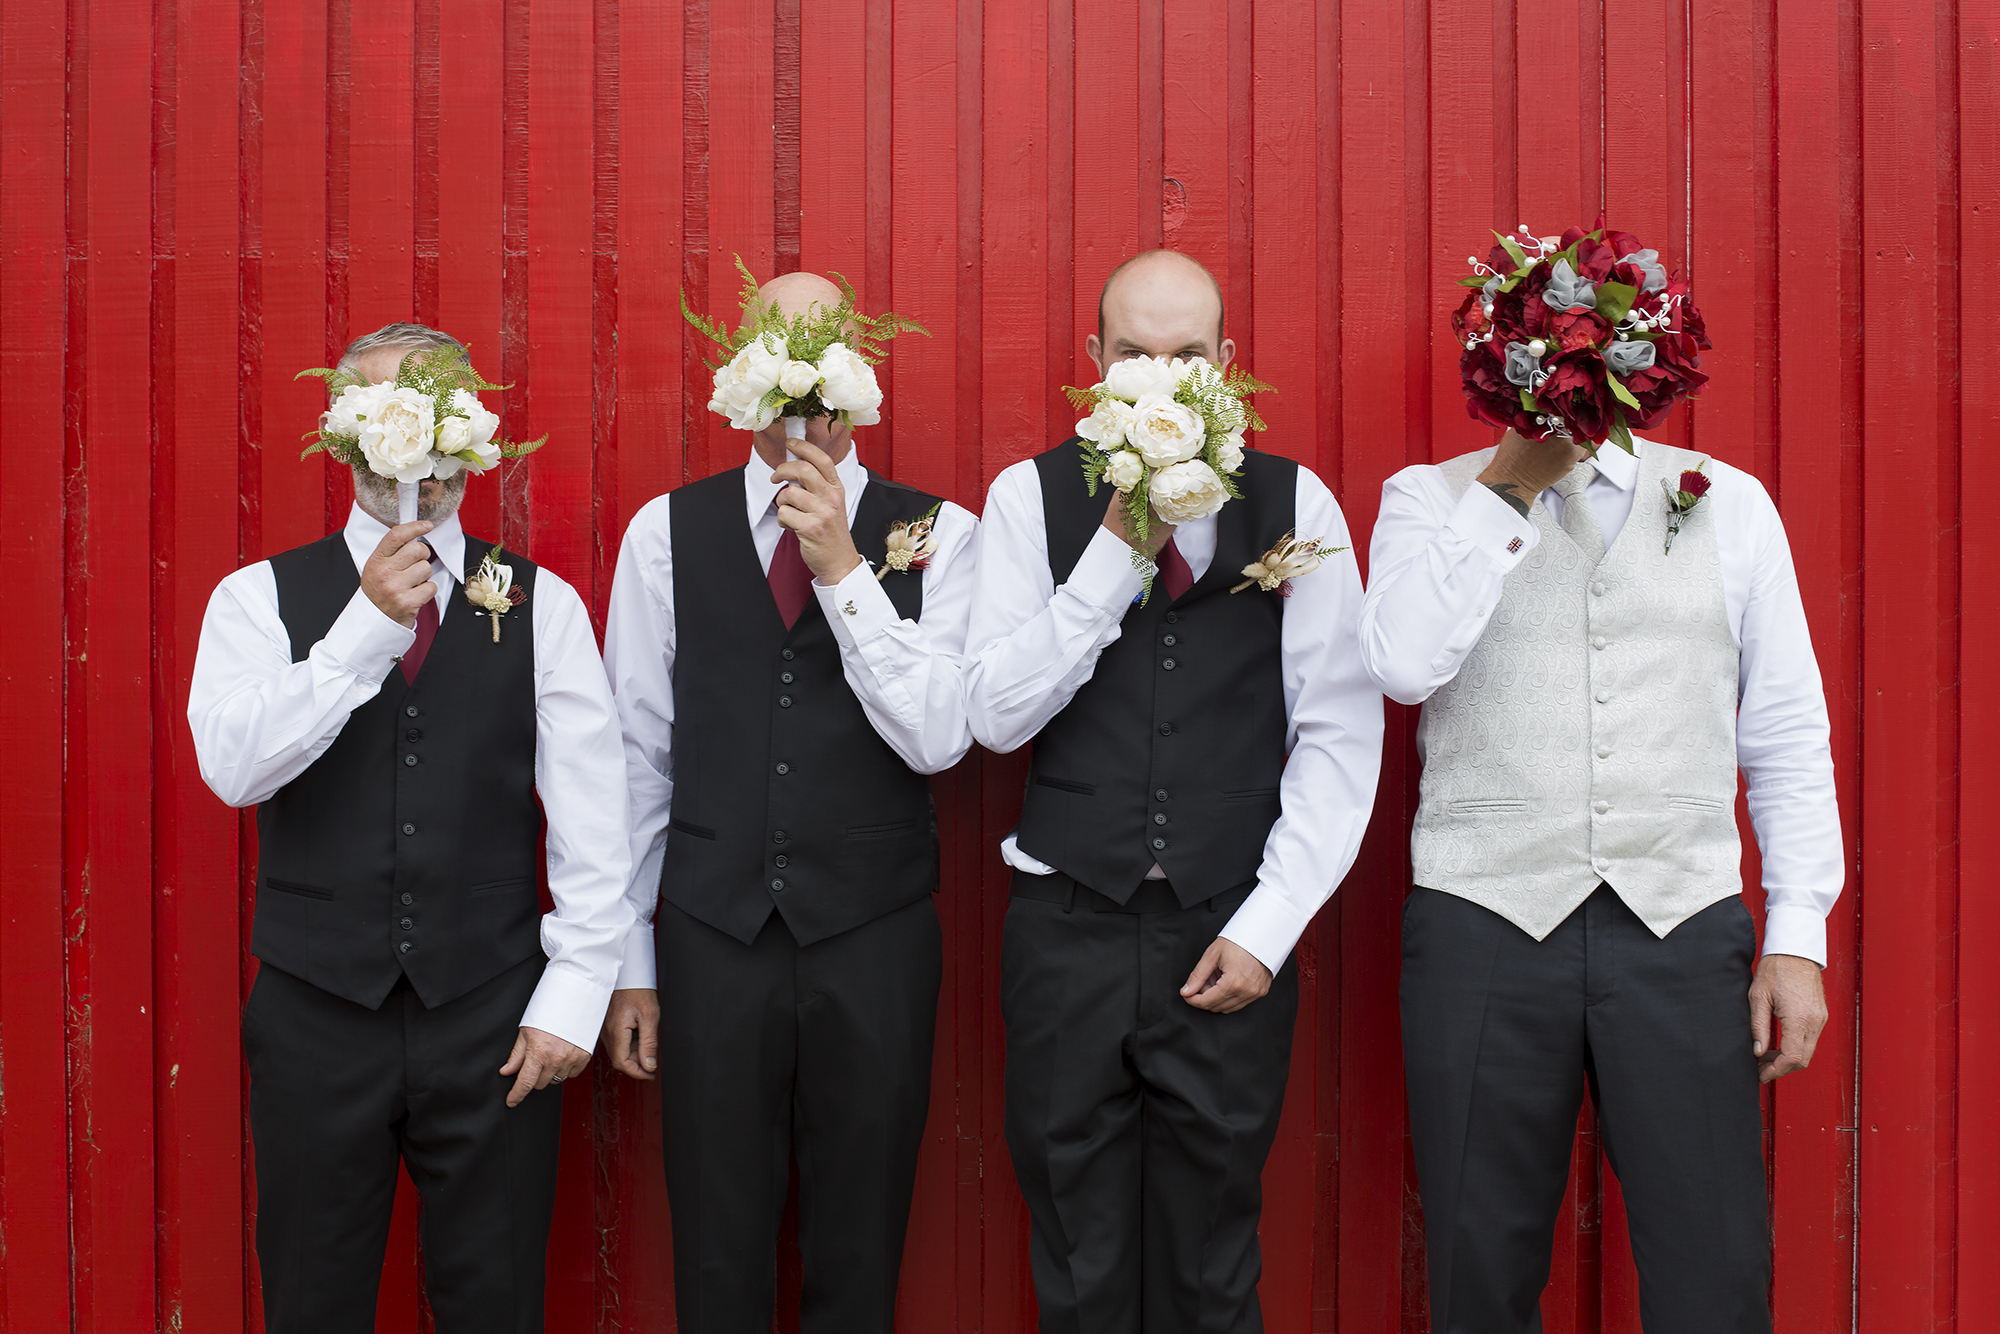 4 Bride and Groom Bridal Party79.jpg